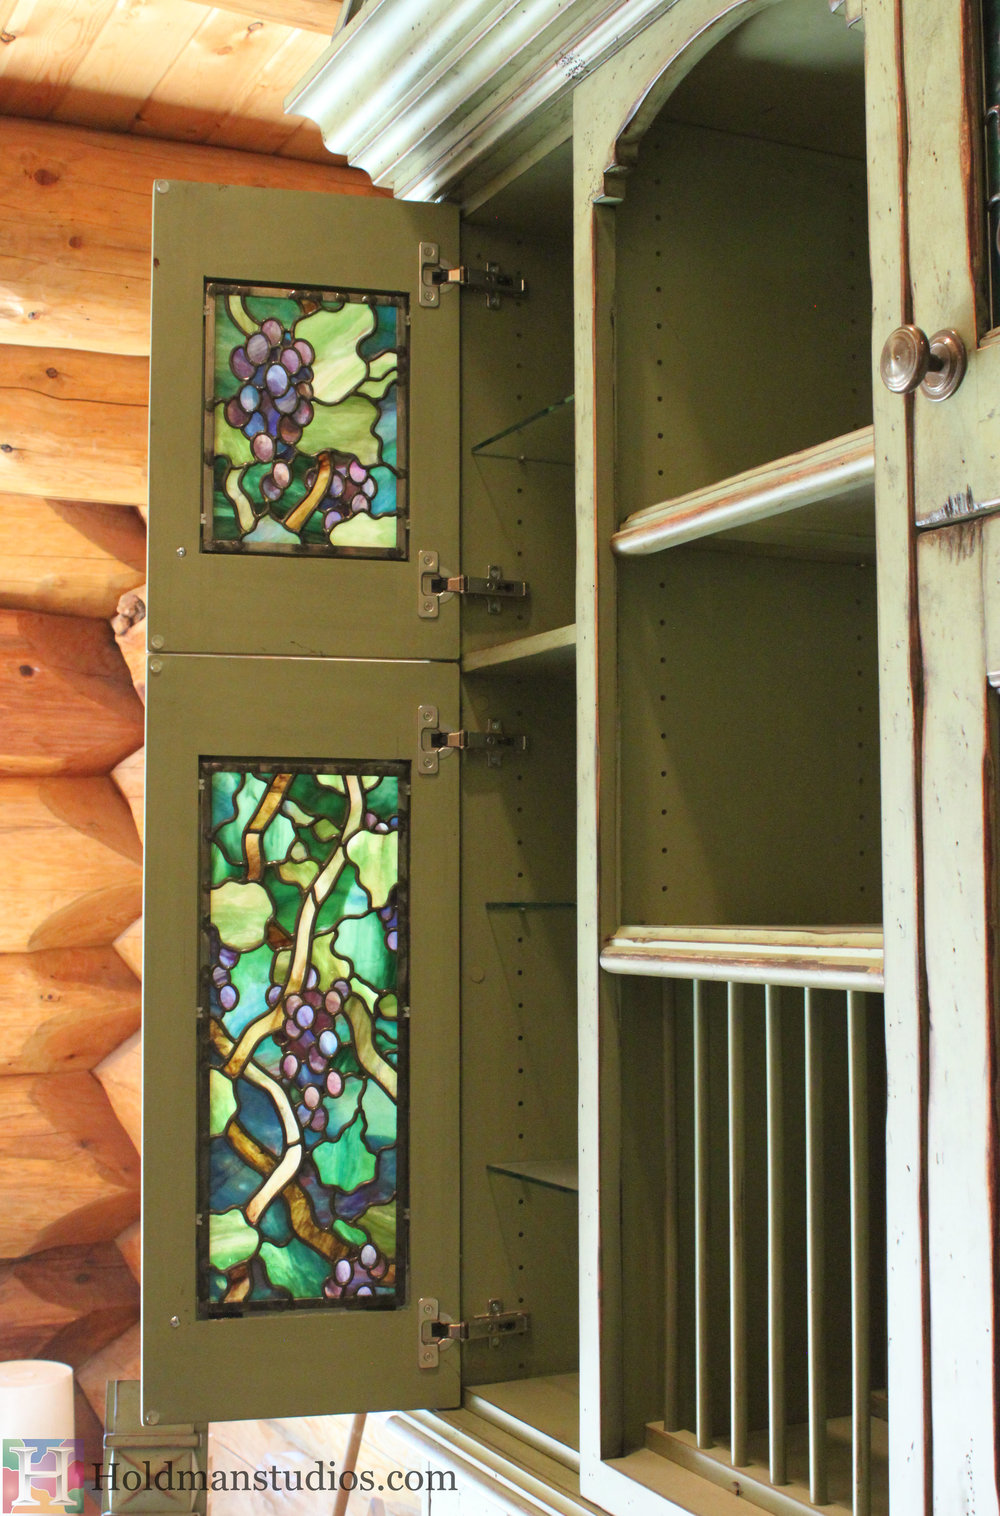 stained glass kitchen cabinet door windows of vines leaves blossoms and grapes created by artists under the direction of tom holdman at holdman studios